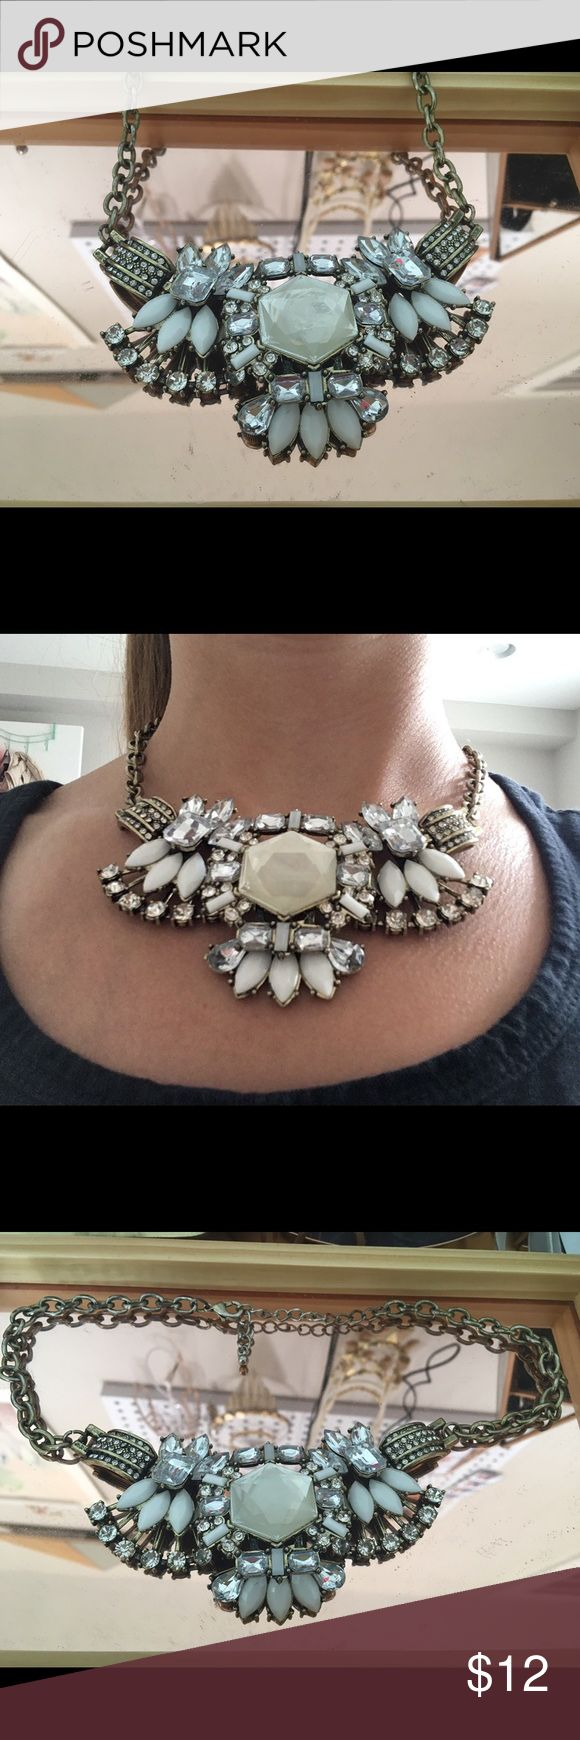 White Motif Chunky Statement Necklace J crew style chunky statement necklace (all gems in tact) high quality and cute feature - many adjustable rungs so it can be high neckline or low chest! J. Crew Jewelry Necklaces